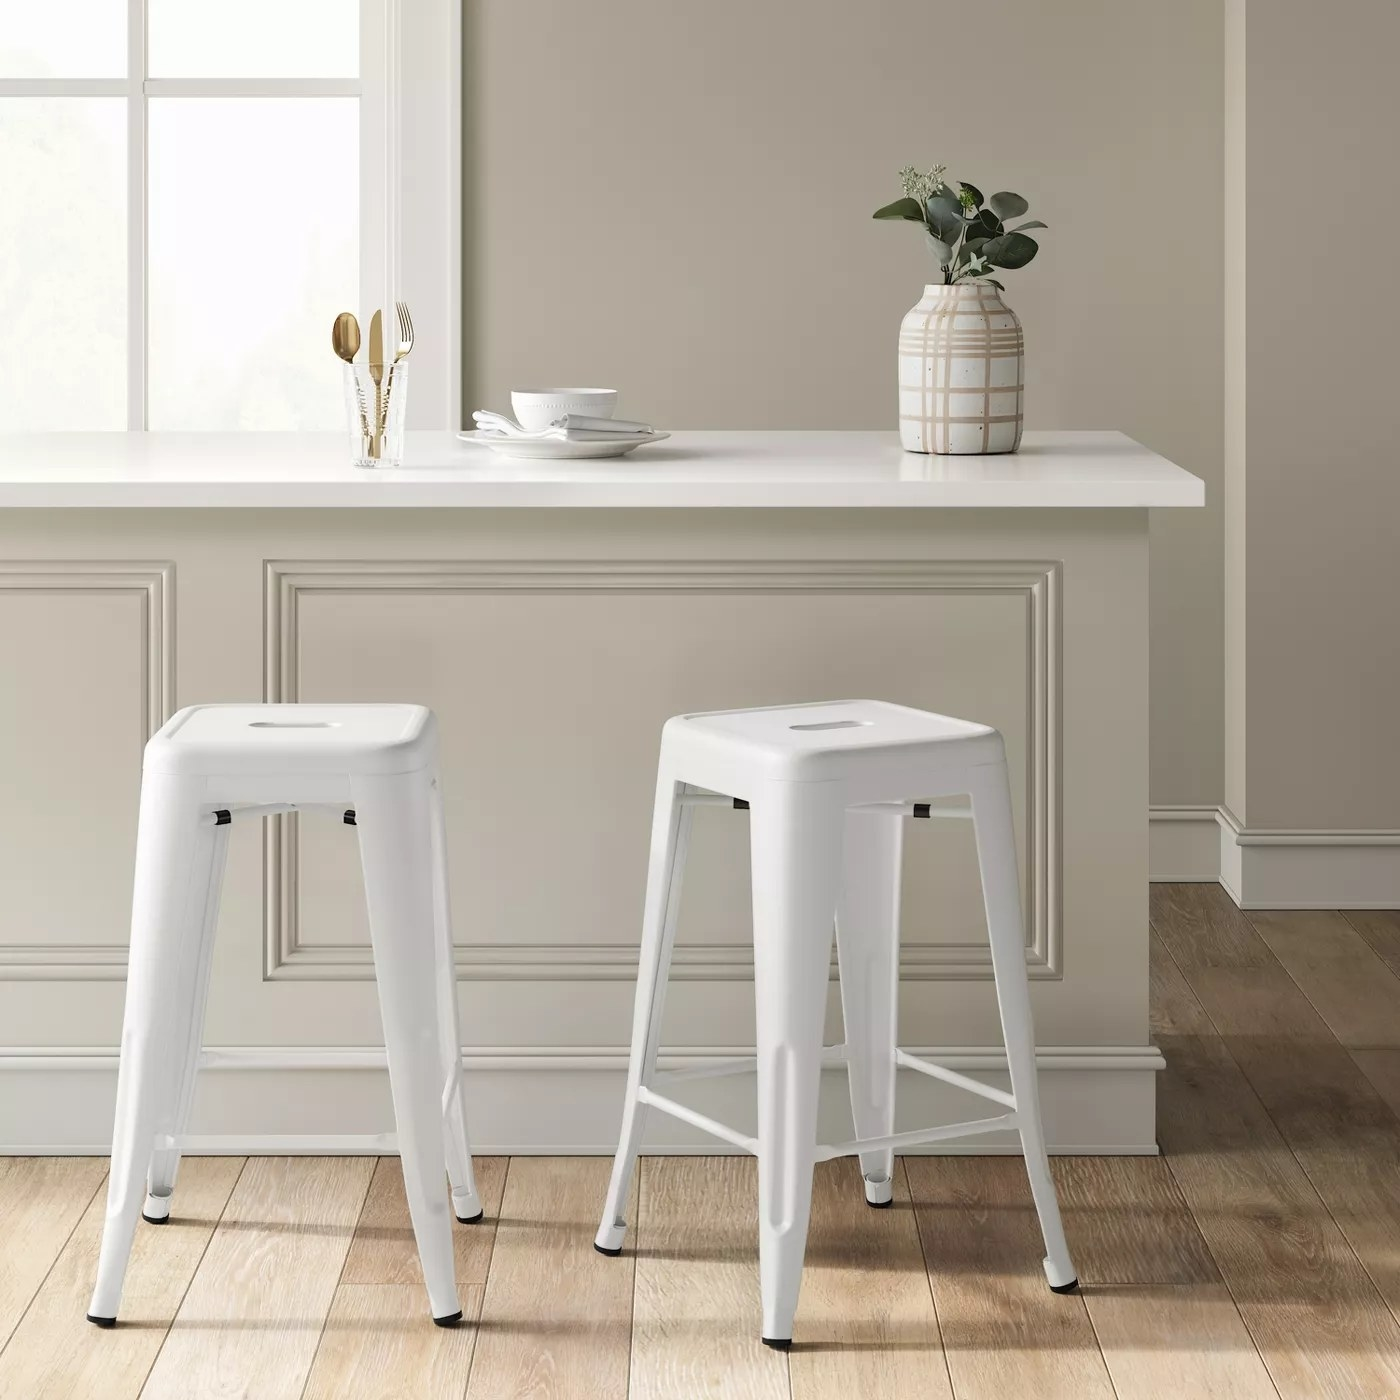 two white barstools in front of a kitchen island